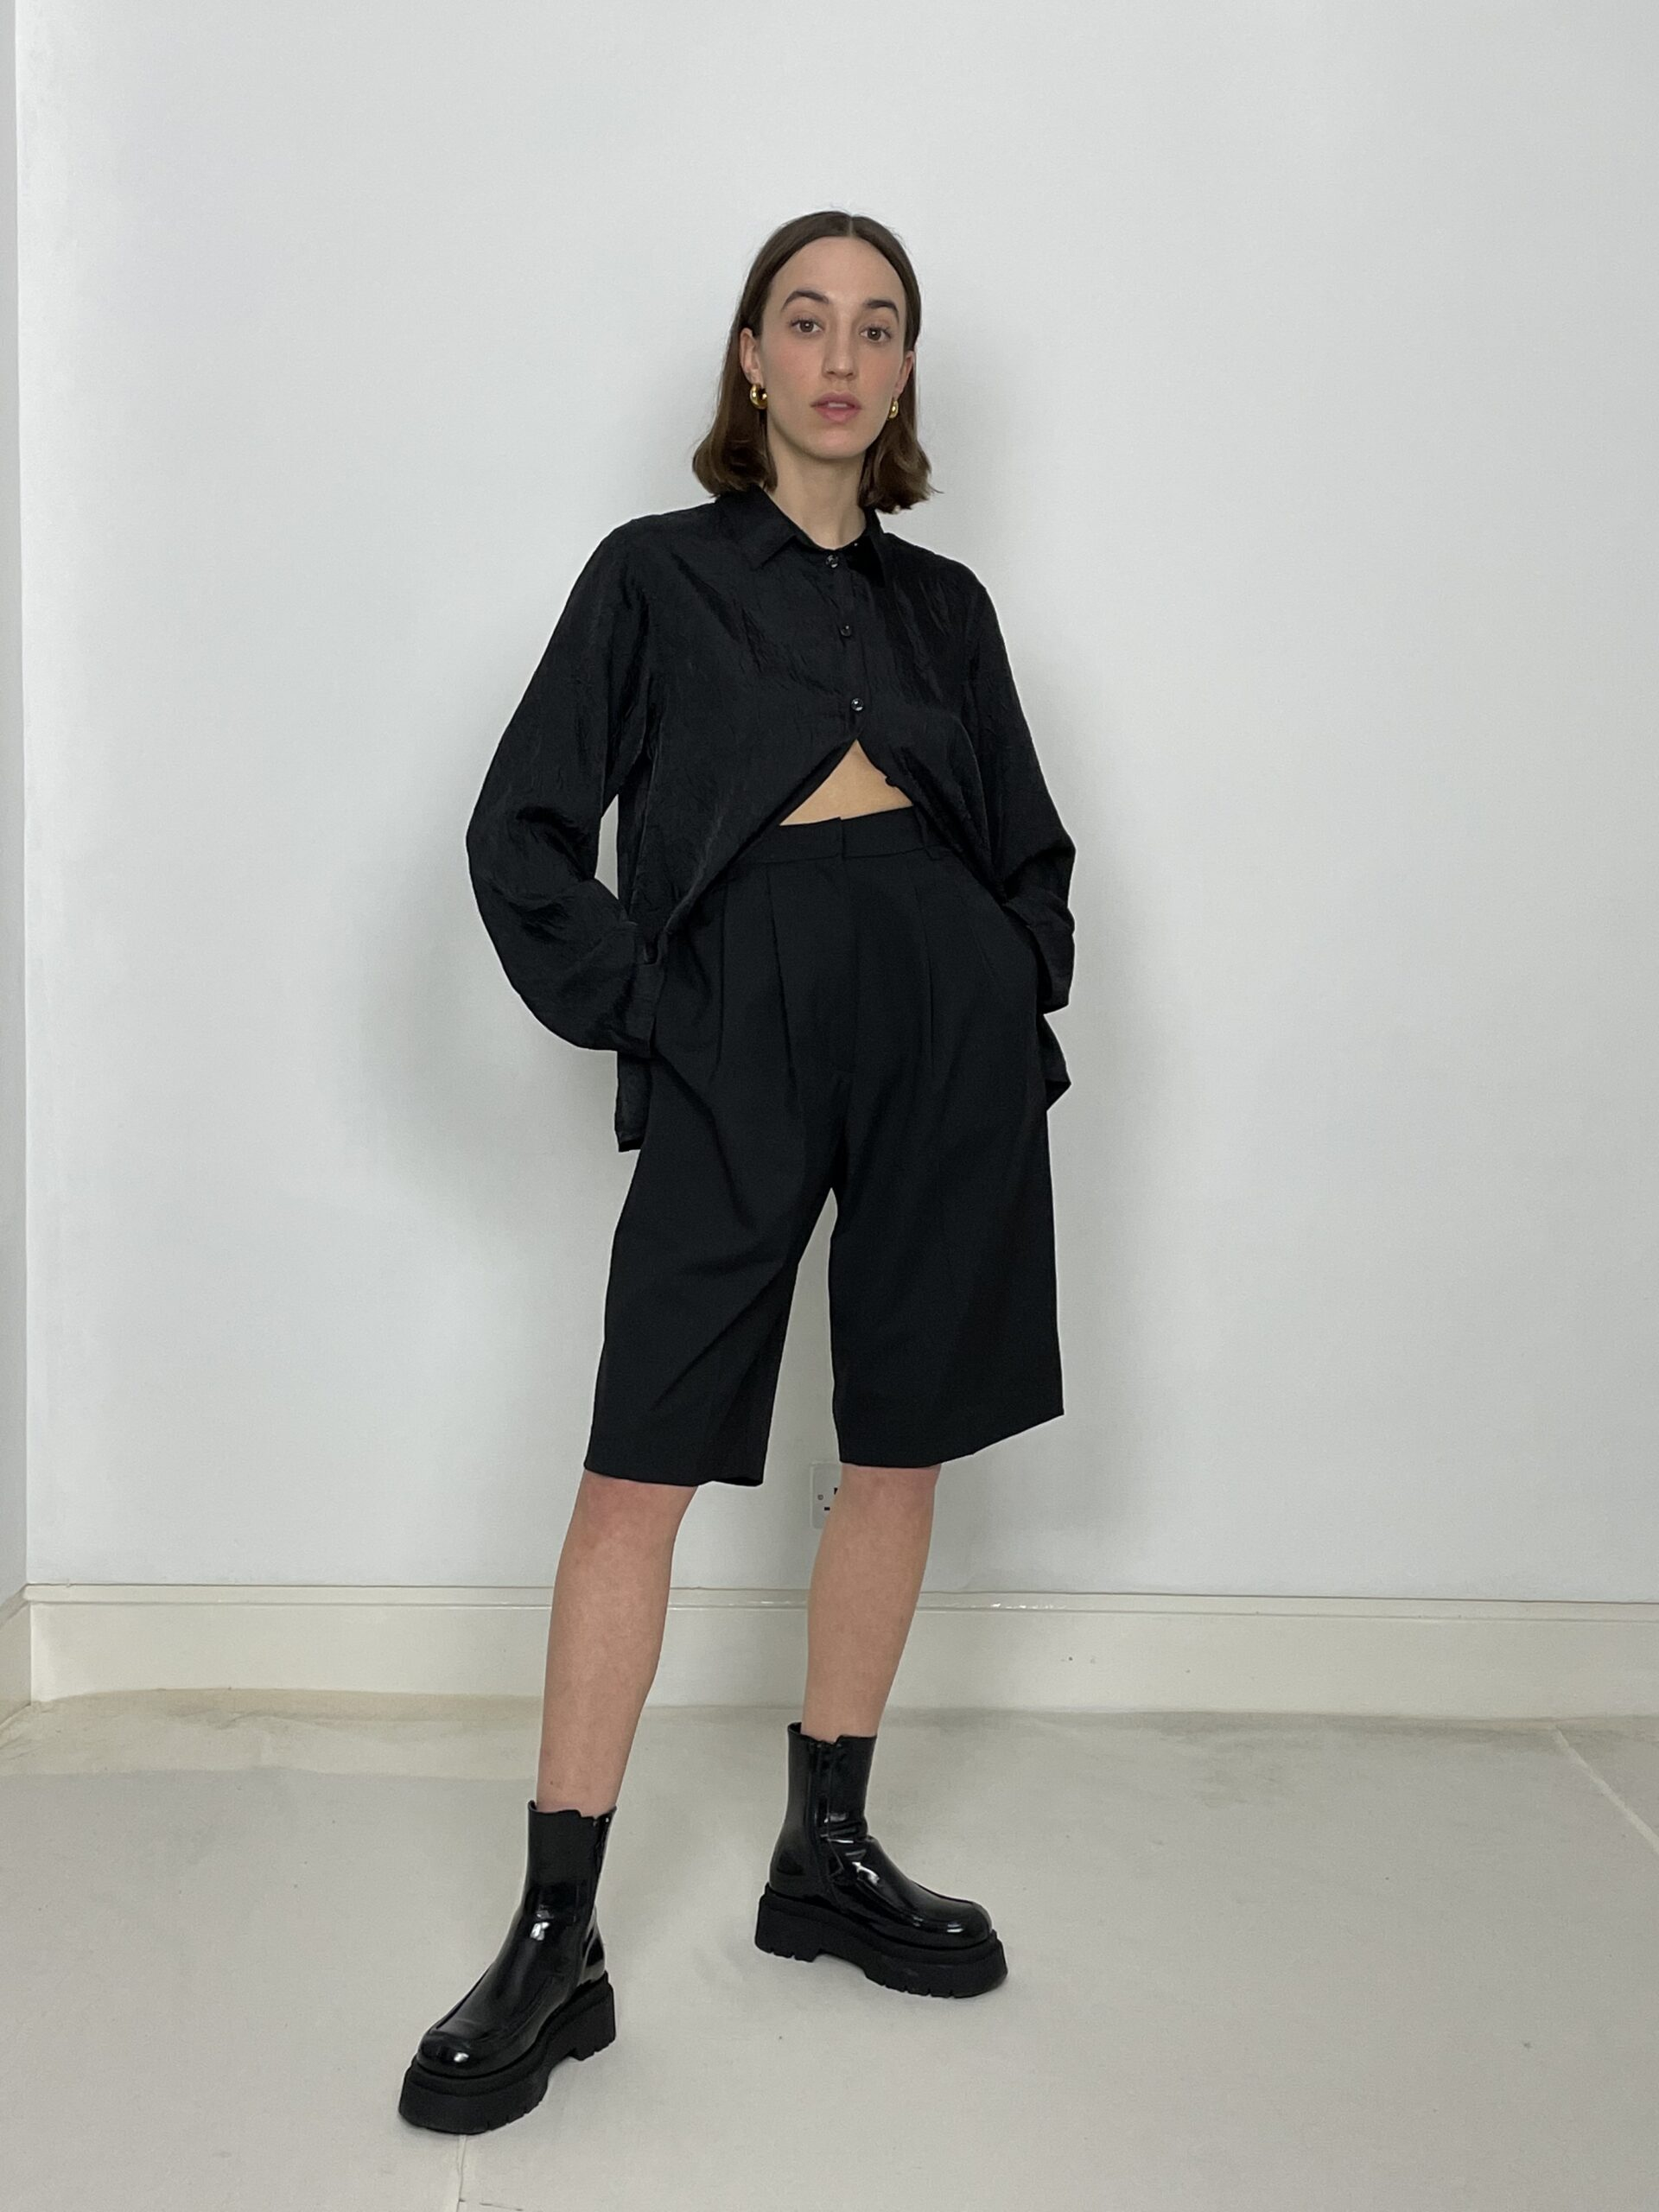 Statement tech shorts in black